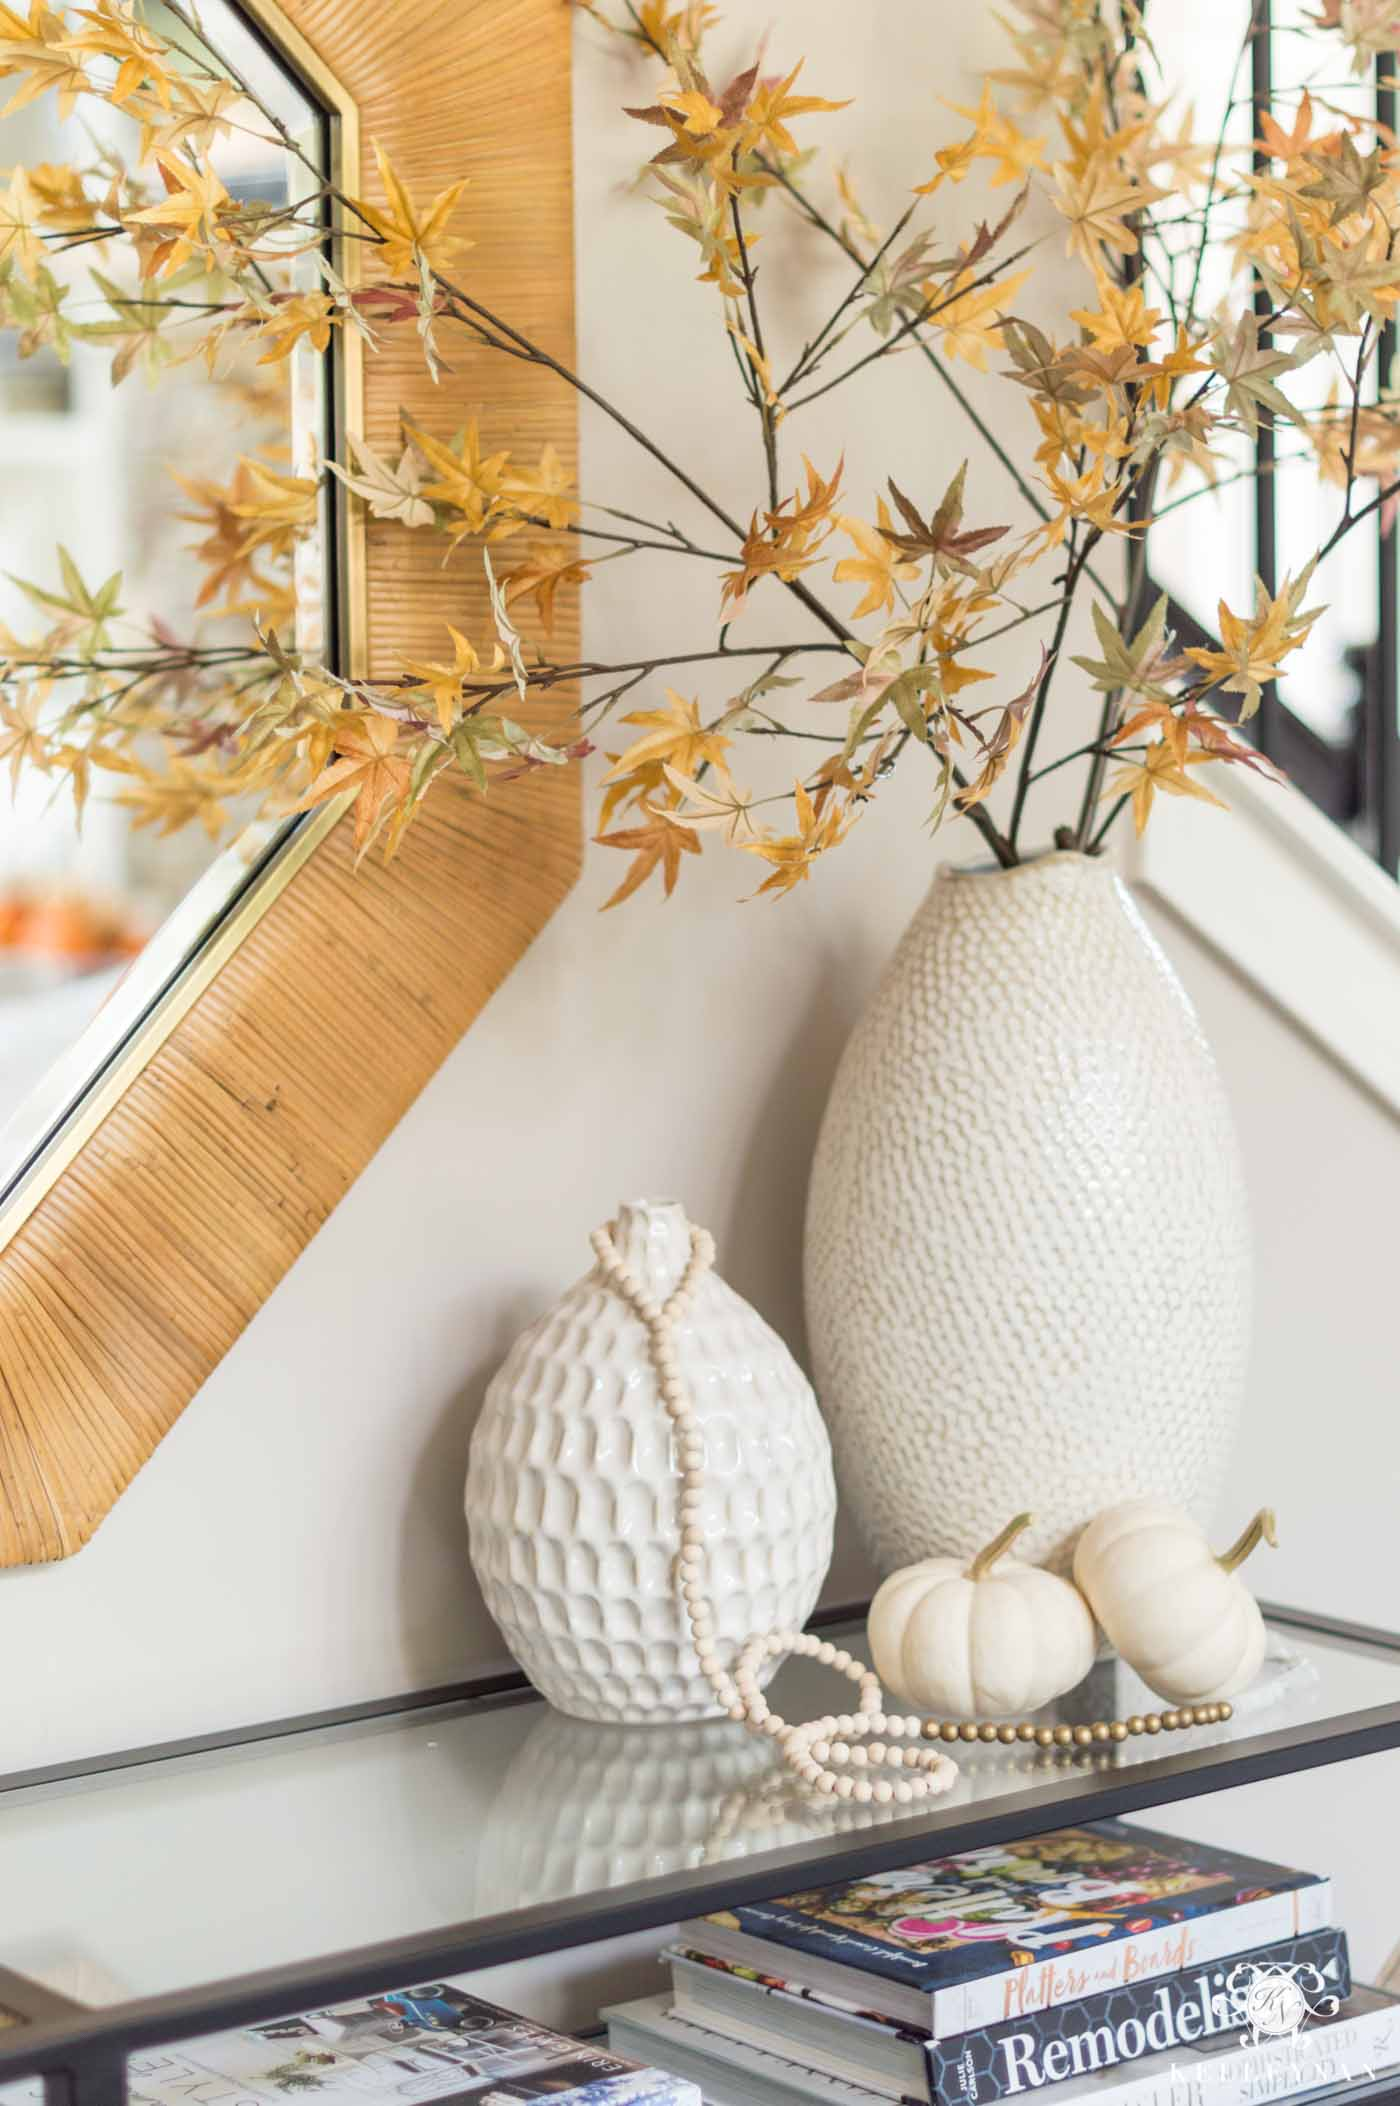 Fall home decor with leaves and pumpkins